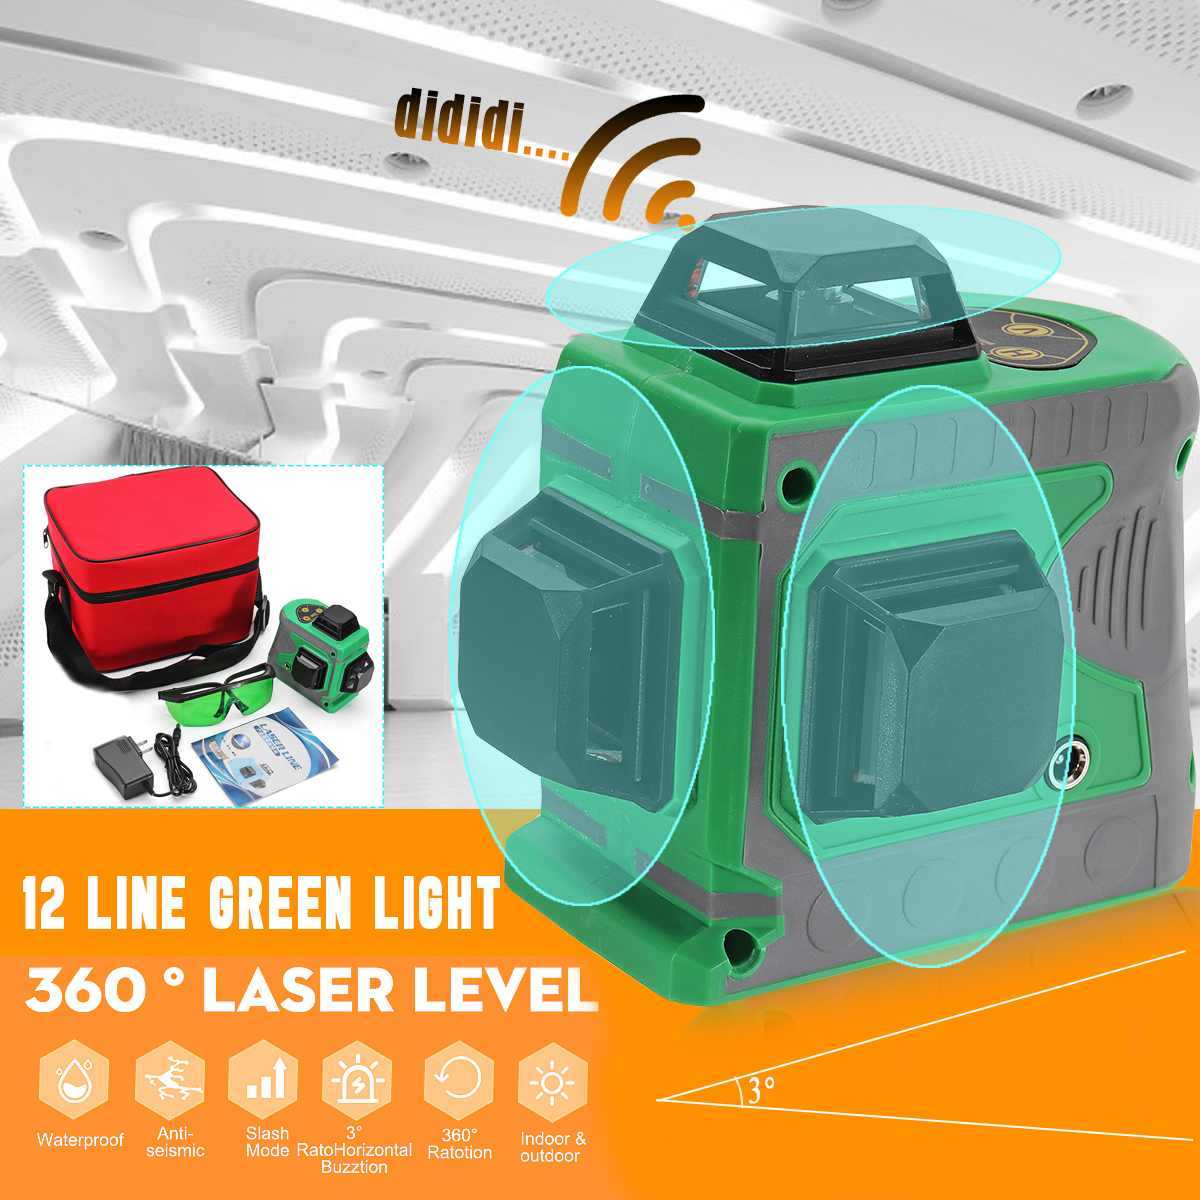 360 Rotary Measure 3D 12 Line Green Light Laser Level Auto Self Leveling Horizontal Vertical Cross Self Leveling 635nm Stability